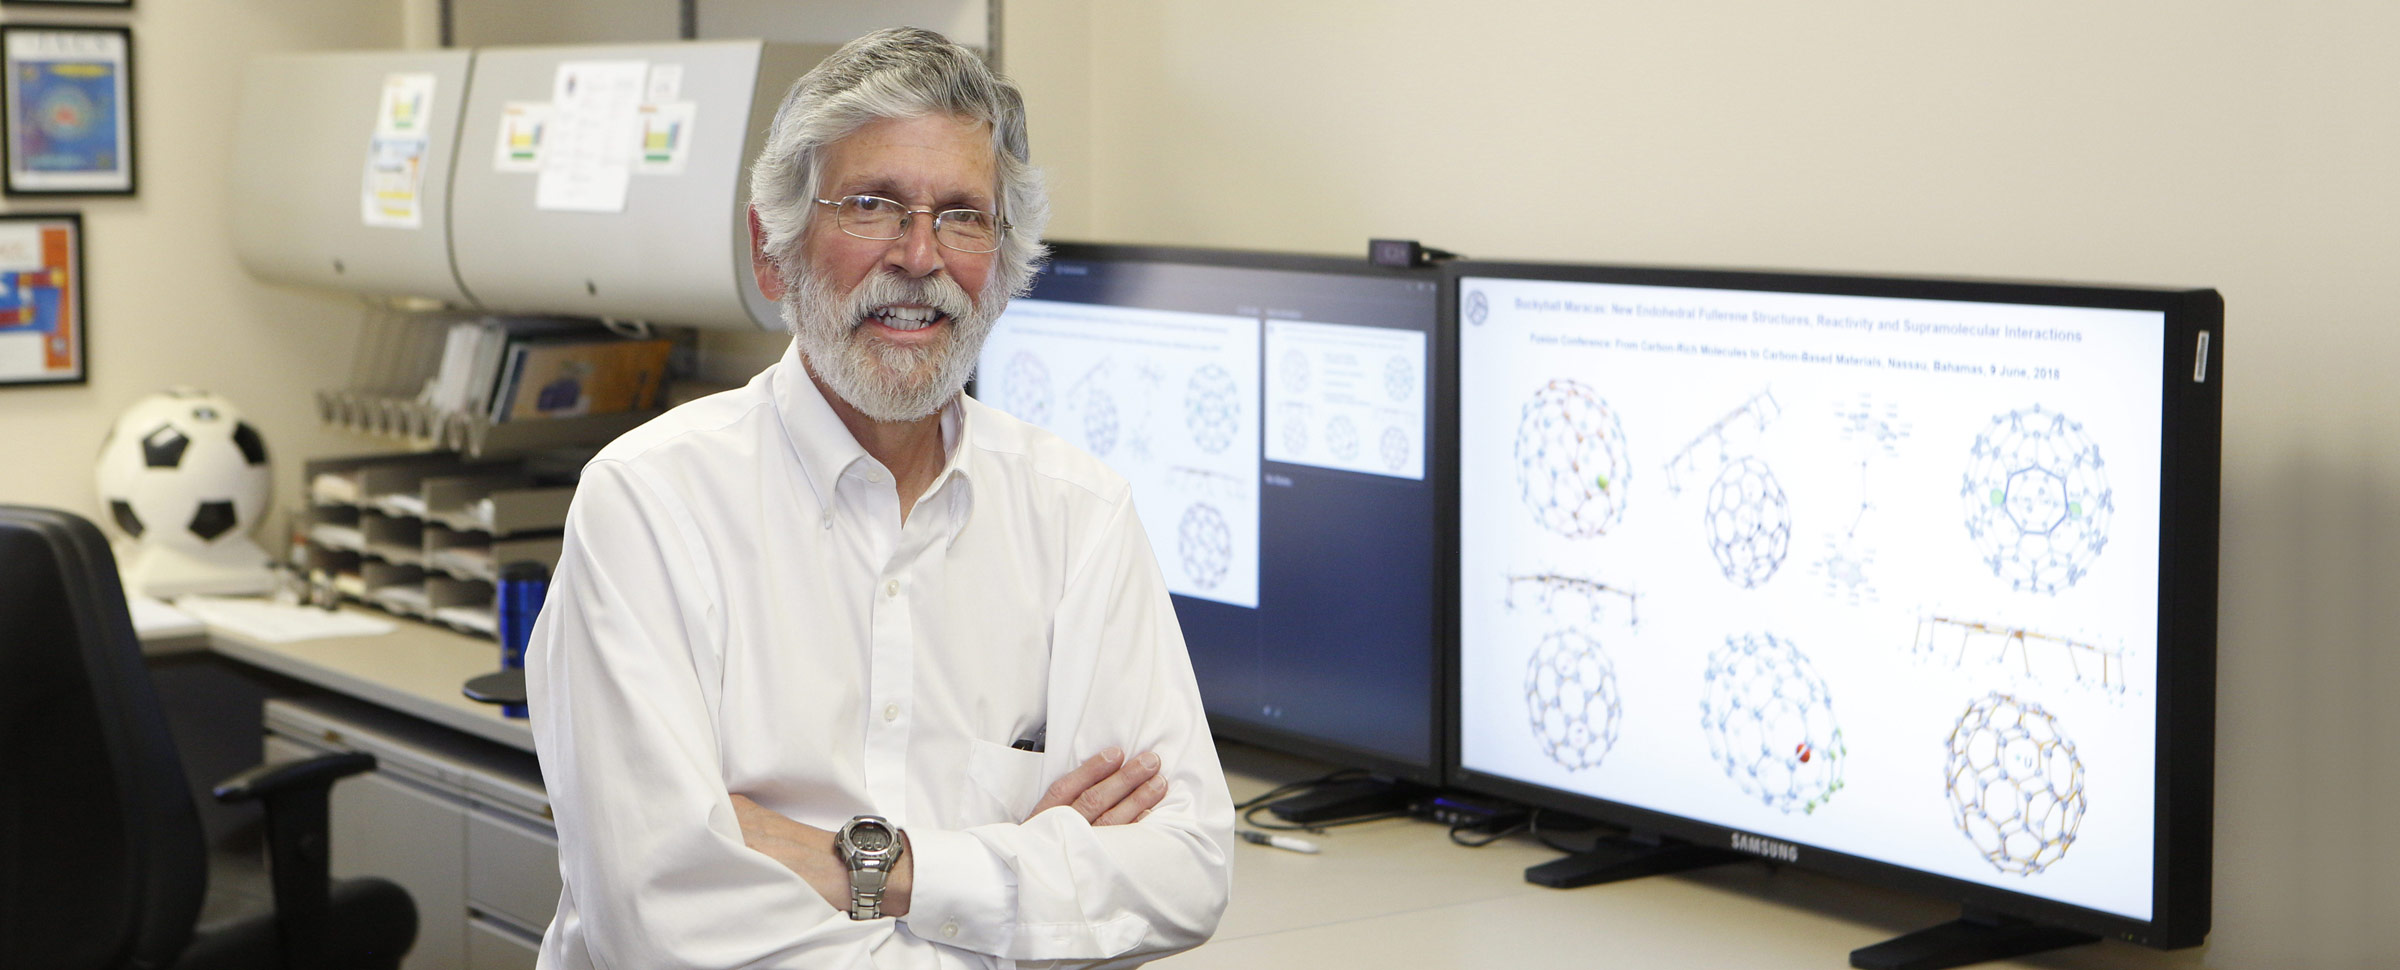 UTEP Professor Elected President of American Chemical Society